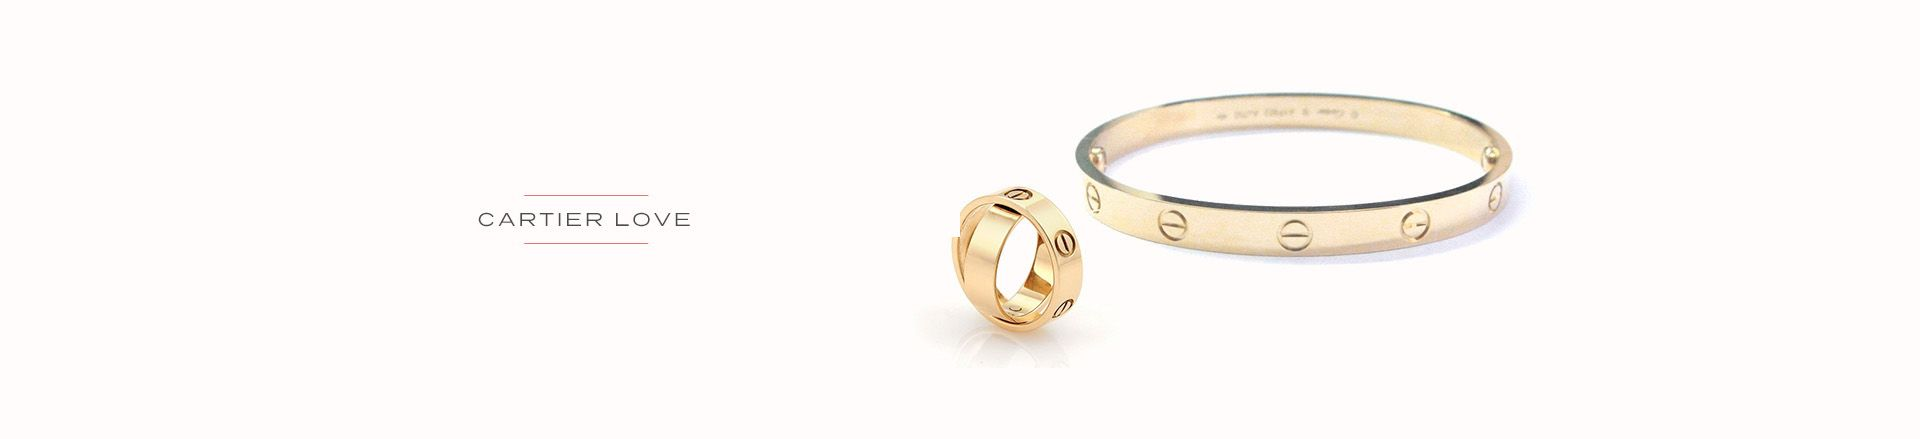 Cartier Love Bracelet and Rings